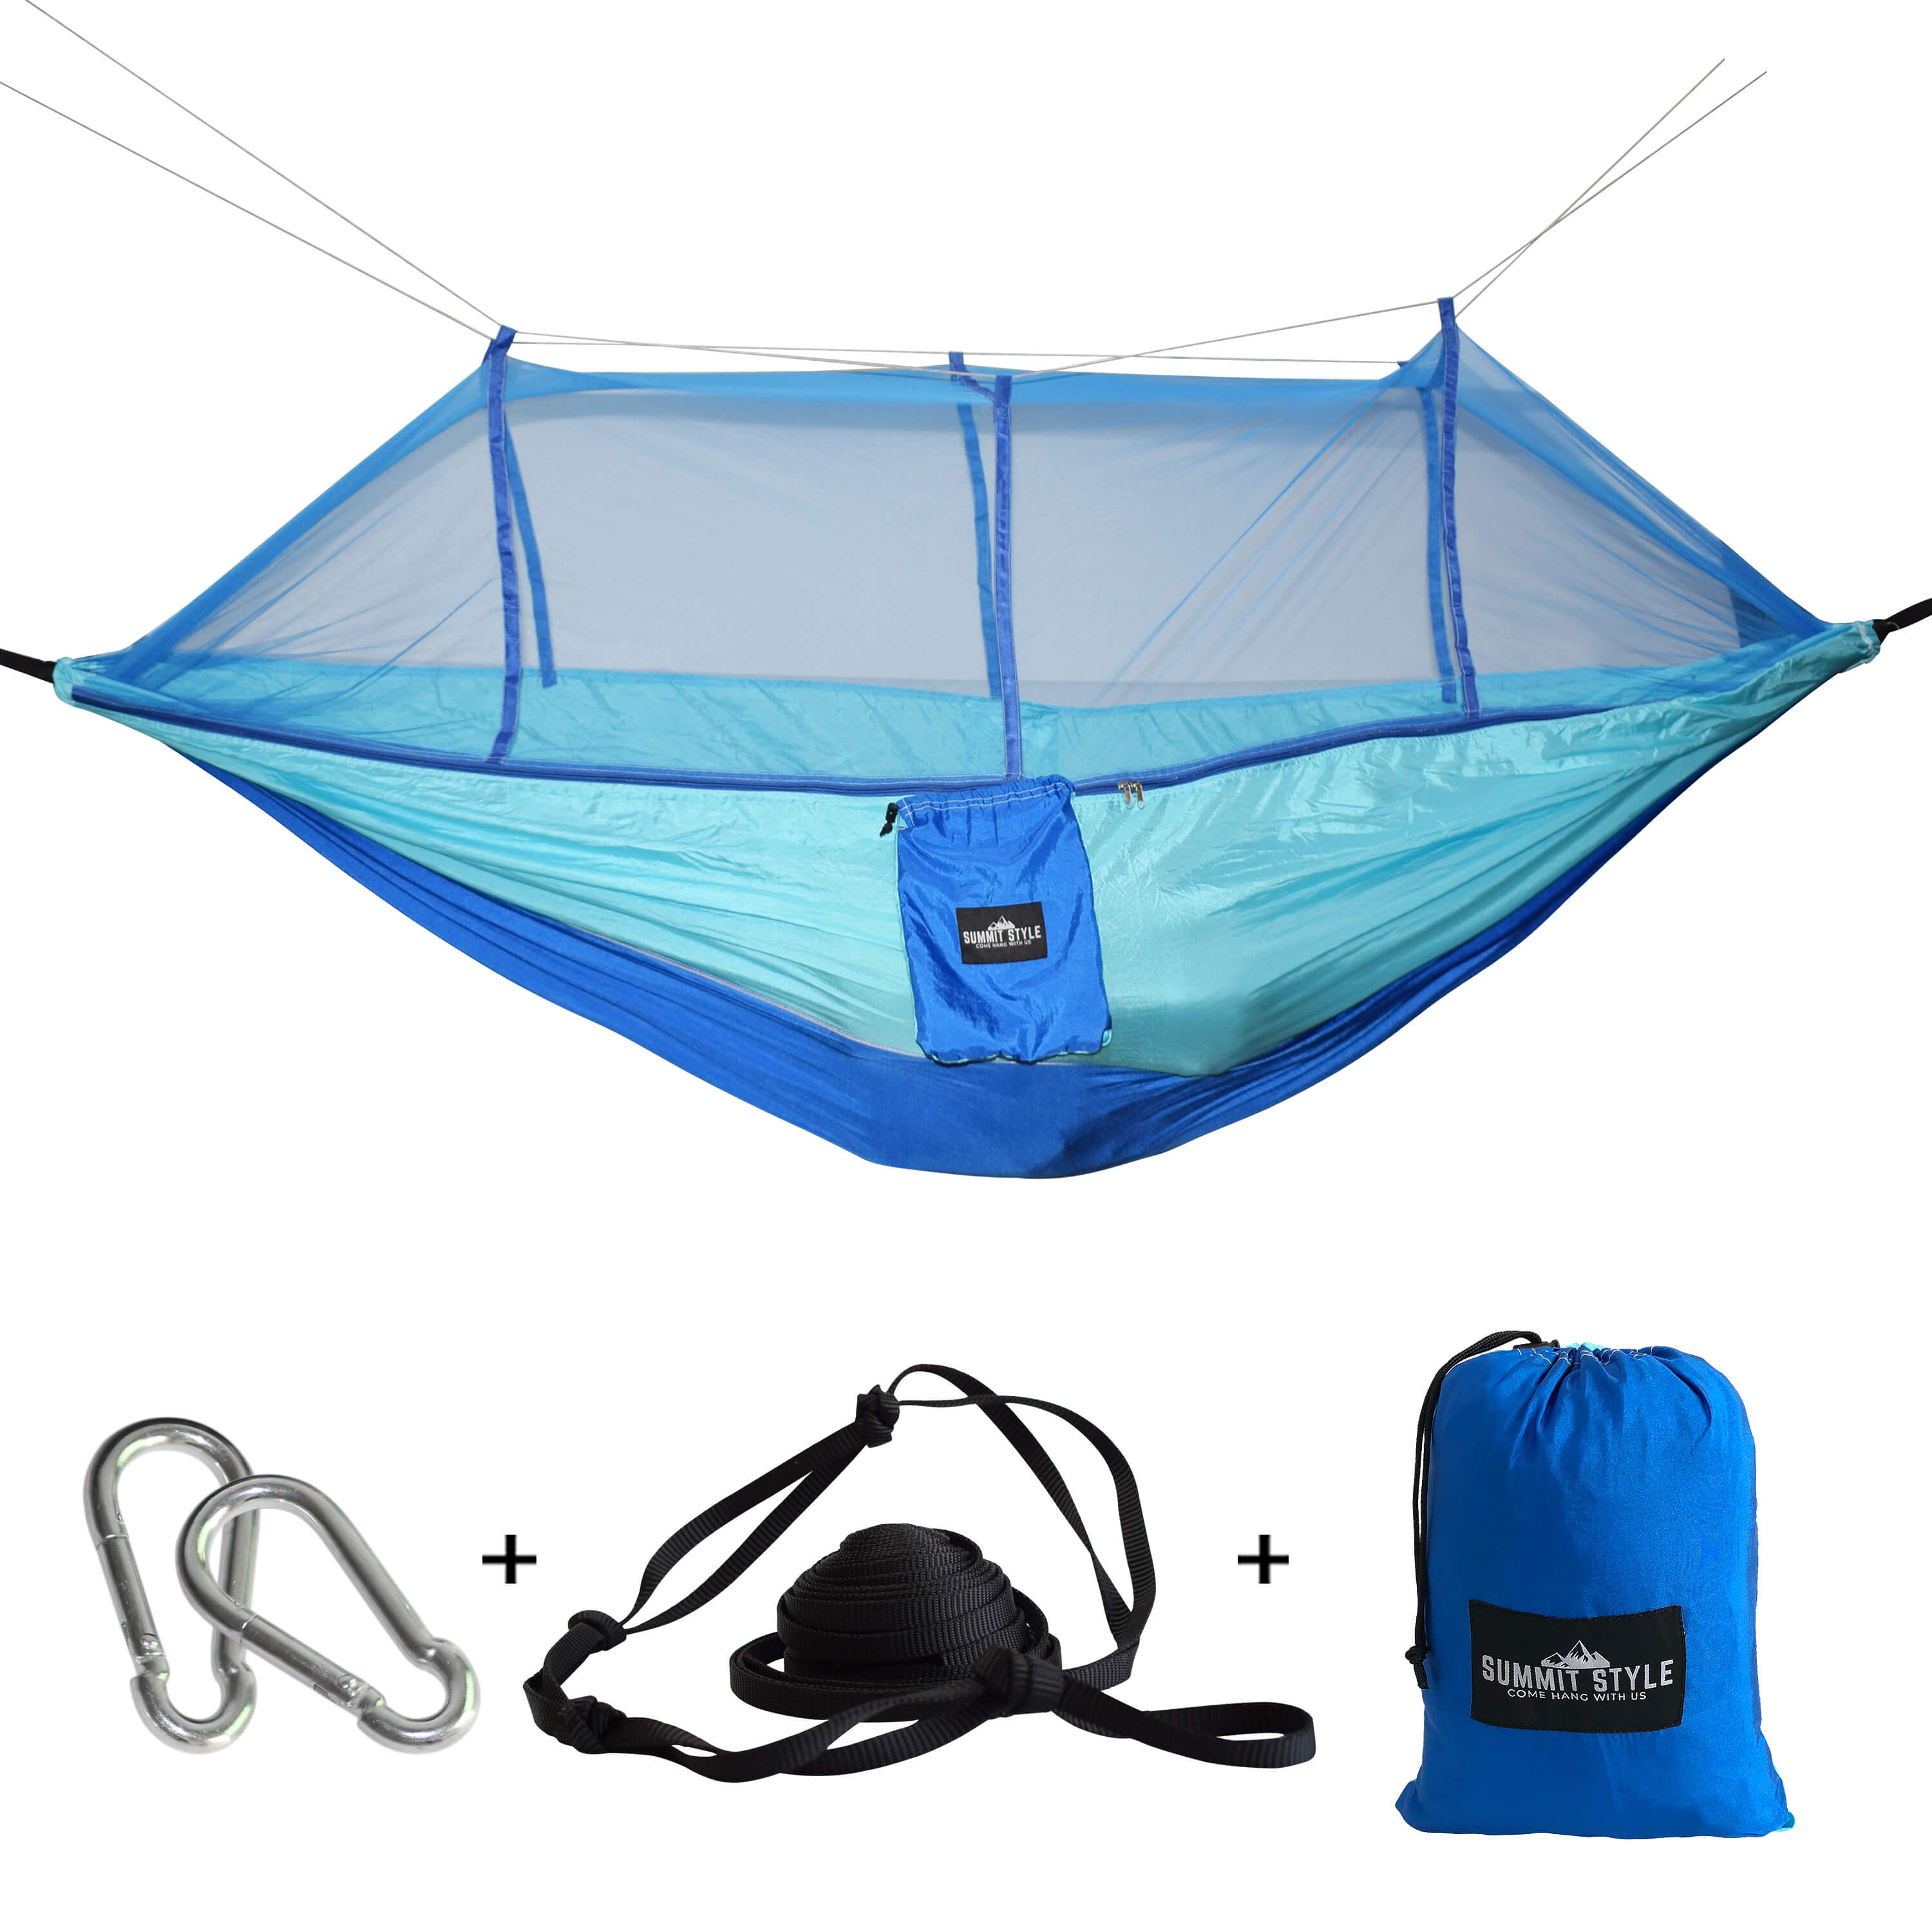 Summit Style's Nature Nest Hammock with Mosquito Net: Light Blue